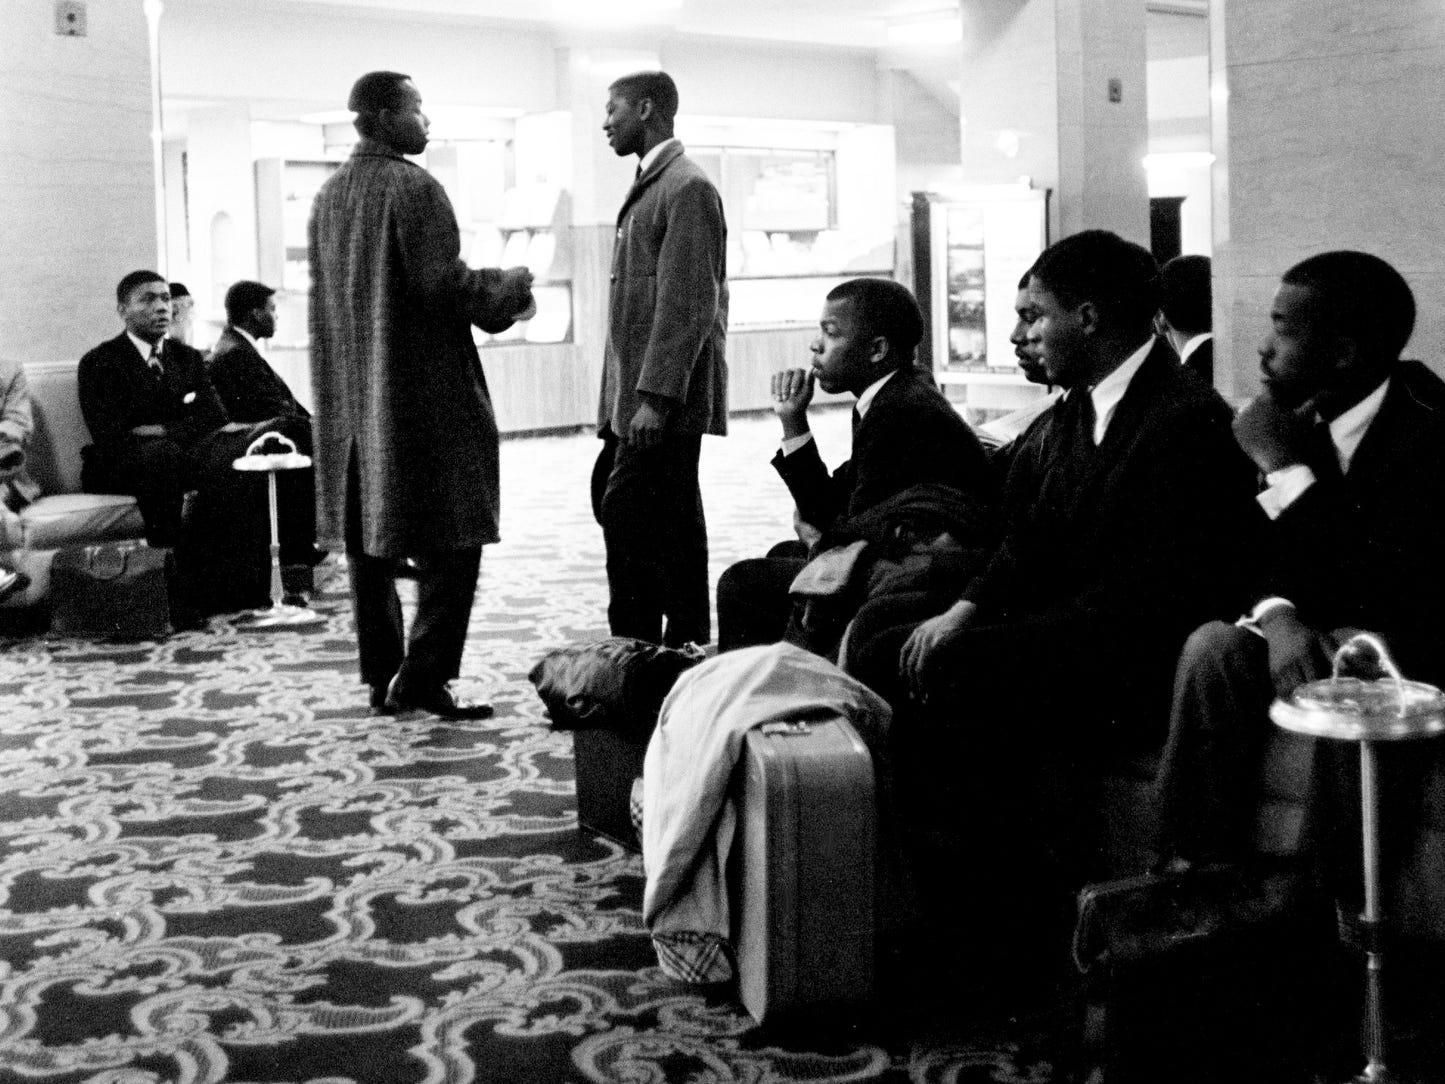 Two dozen black students, including John Lewis, sitting center, attempted to register at the Andrew Jackson Hotel, and when the hotel refused, they sat down in the lobby for the night Feb. 1, 1962. Several white men attending a party in the ballroom went to the balcony and shouted insults at the students. A couple of men tossed their drinks over the rail into the lobby below.